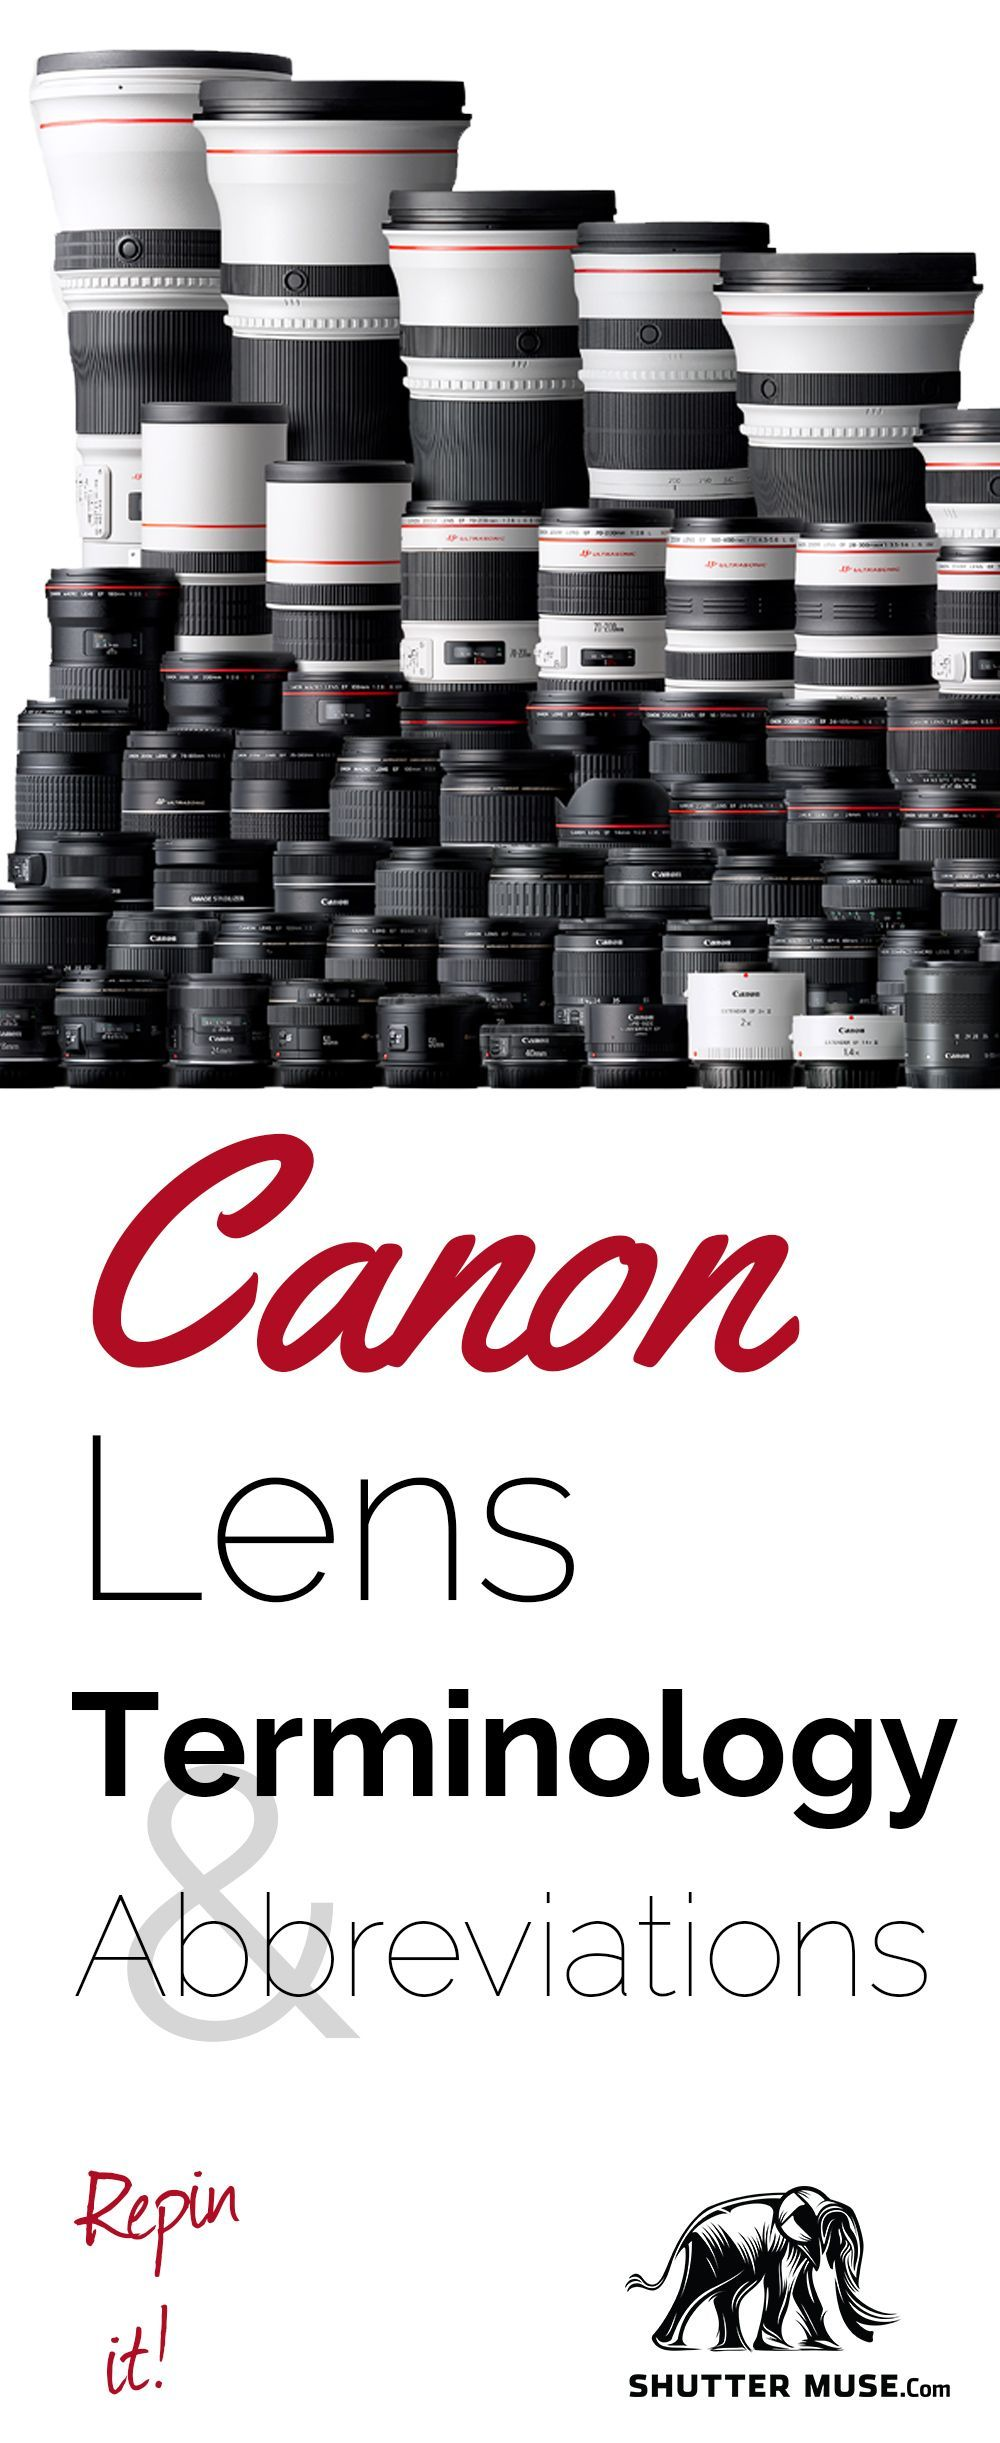 check out this great guide to canon lens terminology and rh pinterest com canon lens buying guide canon lenses guide